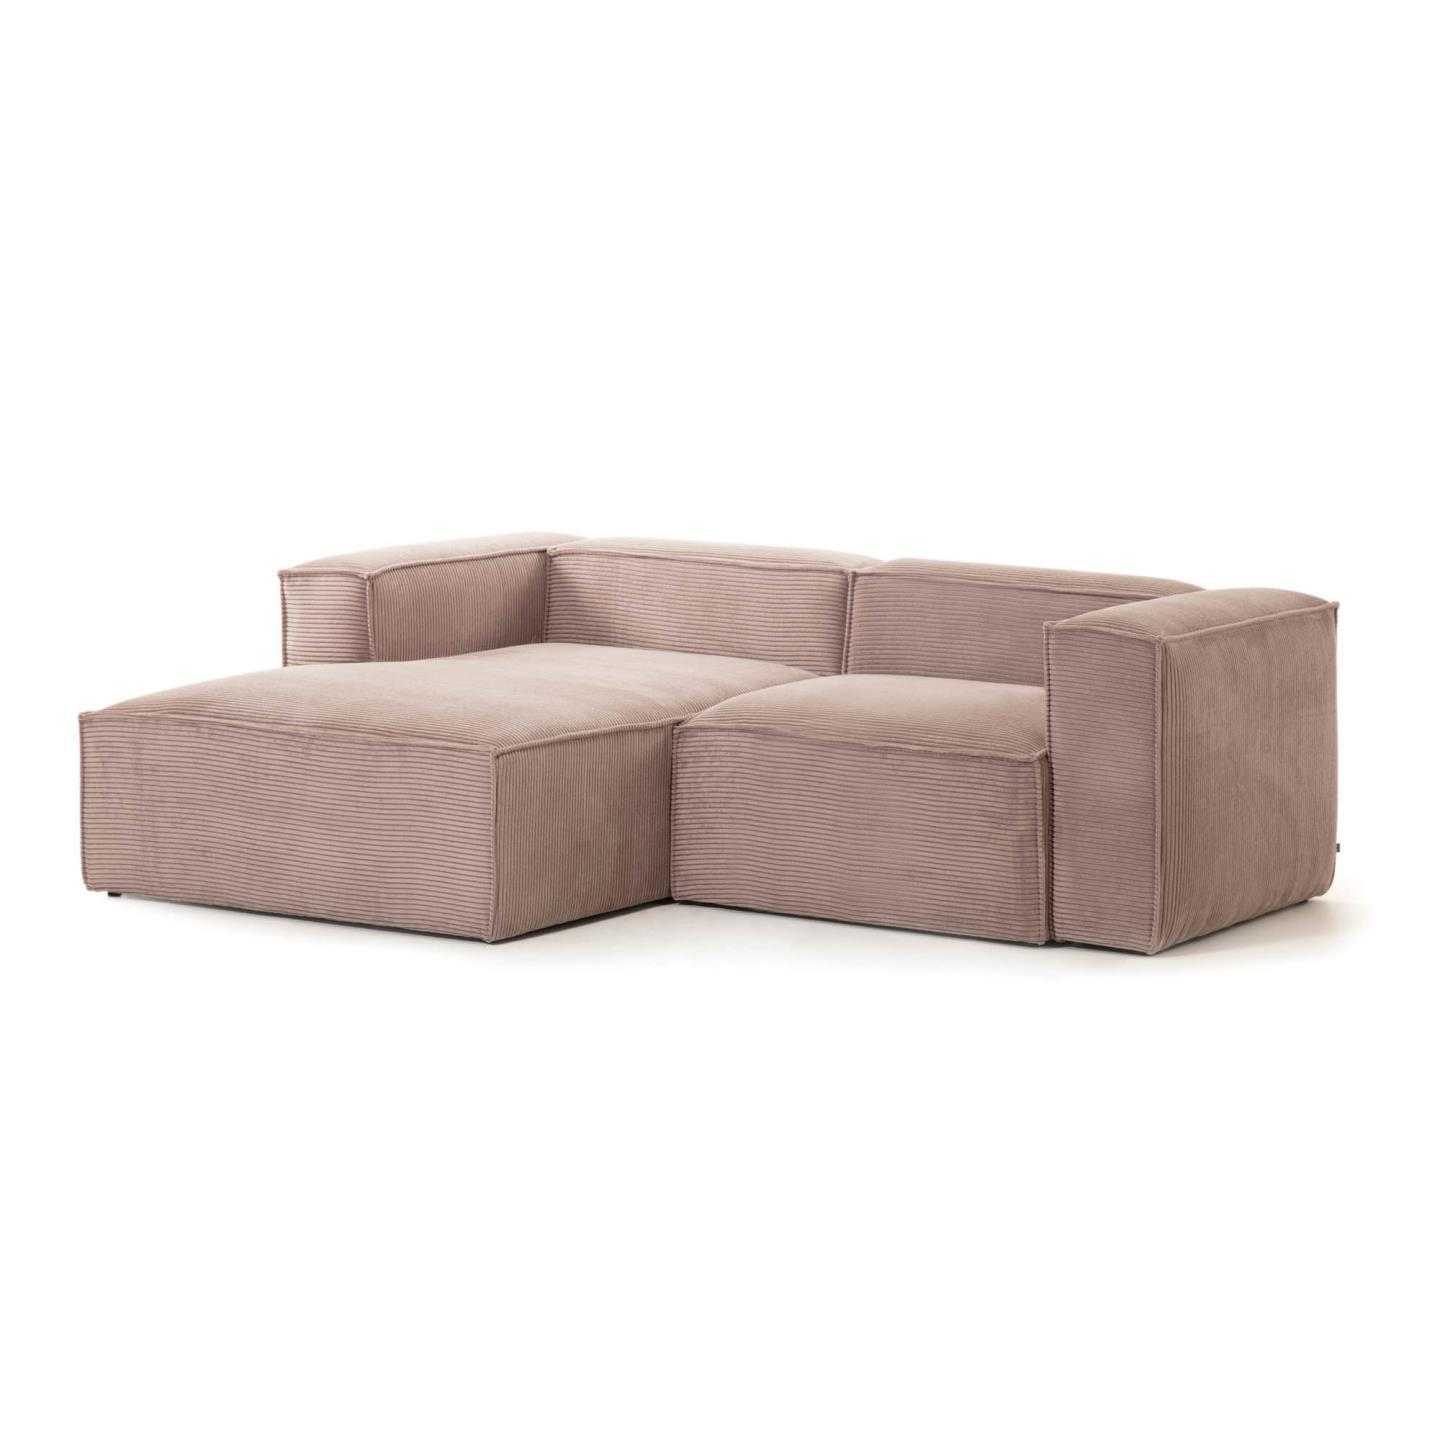 Pink velveteen 2-seater Blok sofa with left chaise longue